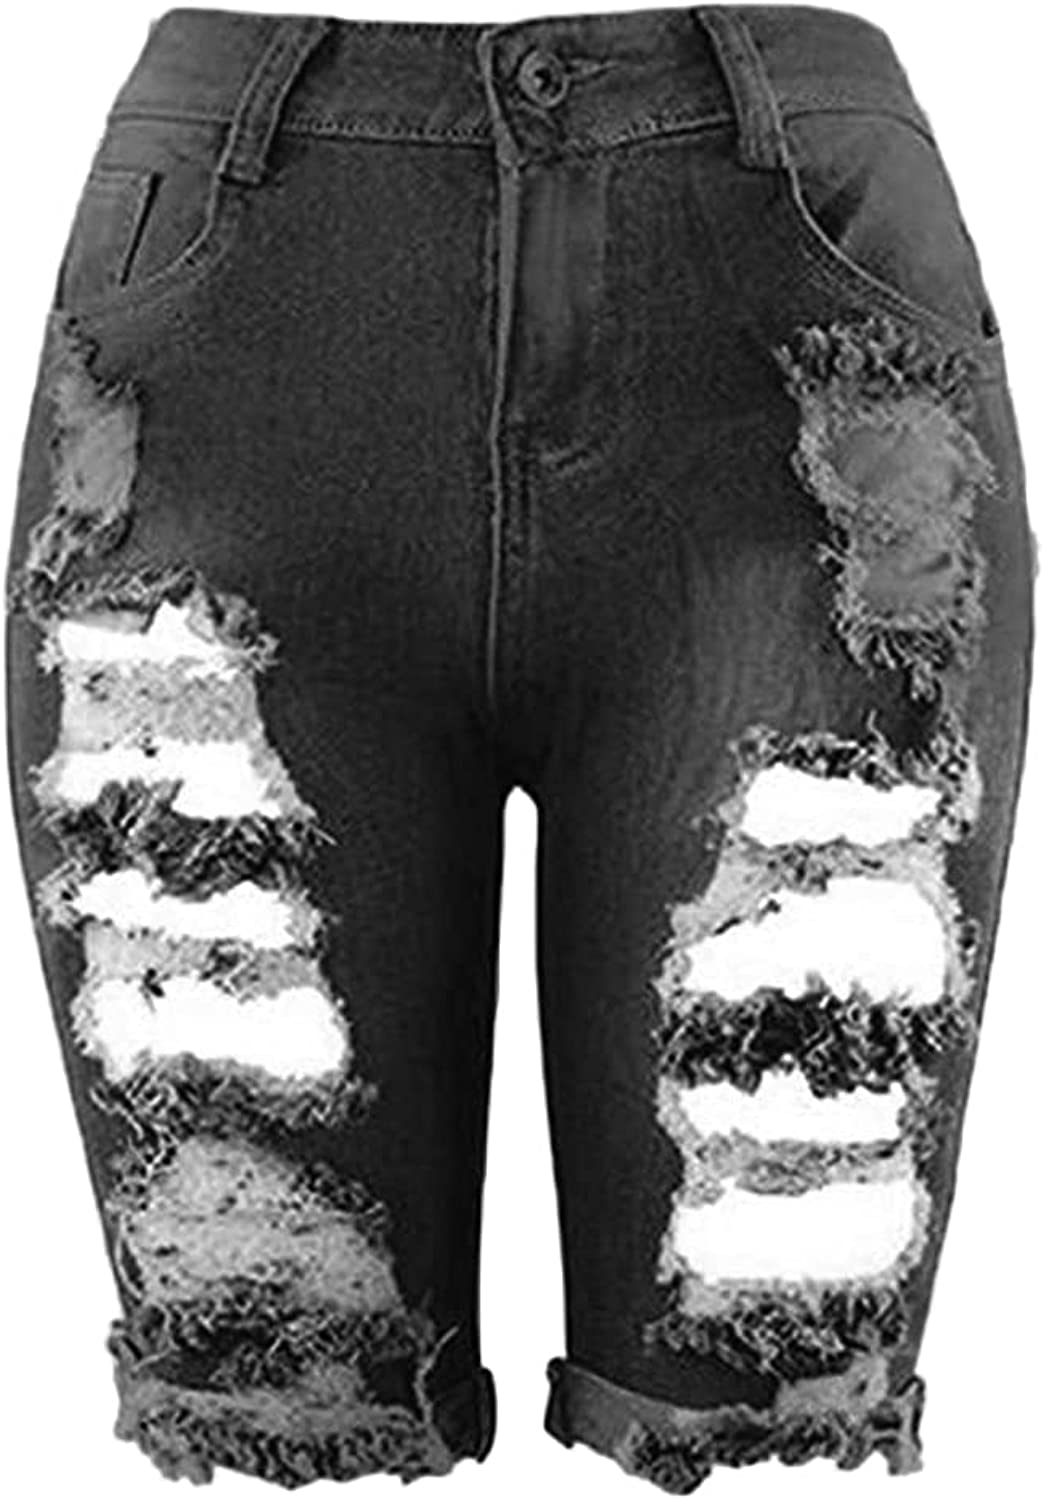 Women's Ripped Jean Max 42% OFF Bermuda Shorts Super sale period limited Destroyed High Hole Waist Den